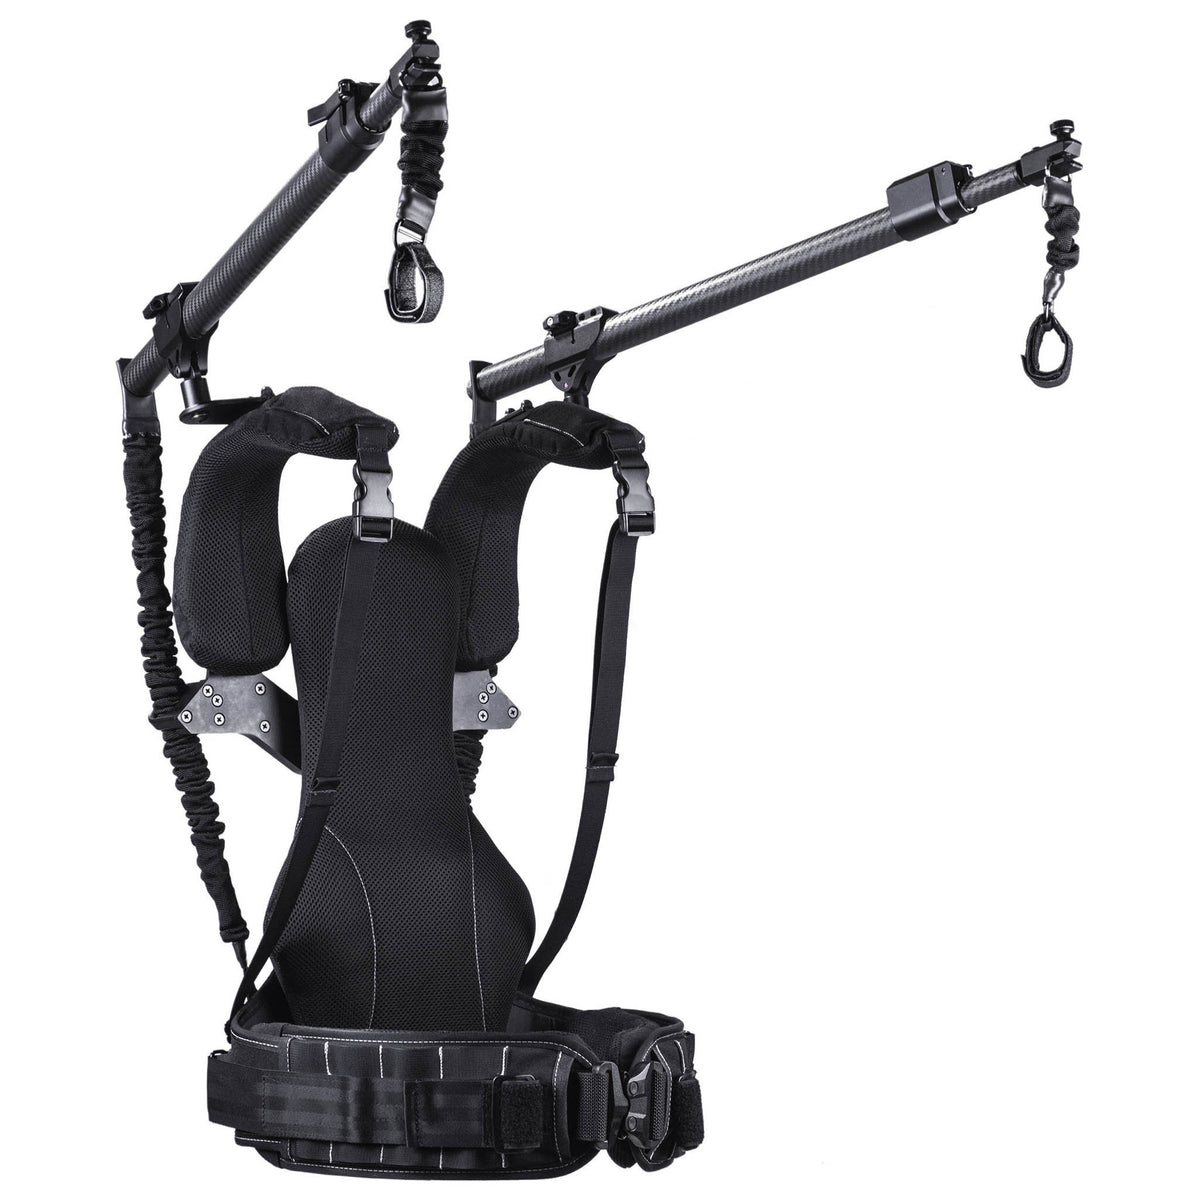 Ready Rig Camera Support with ProArms